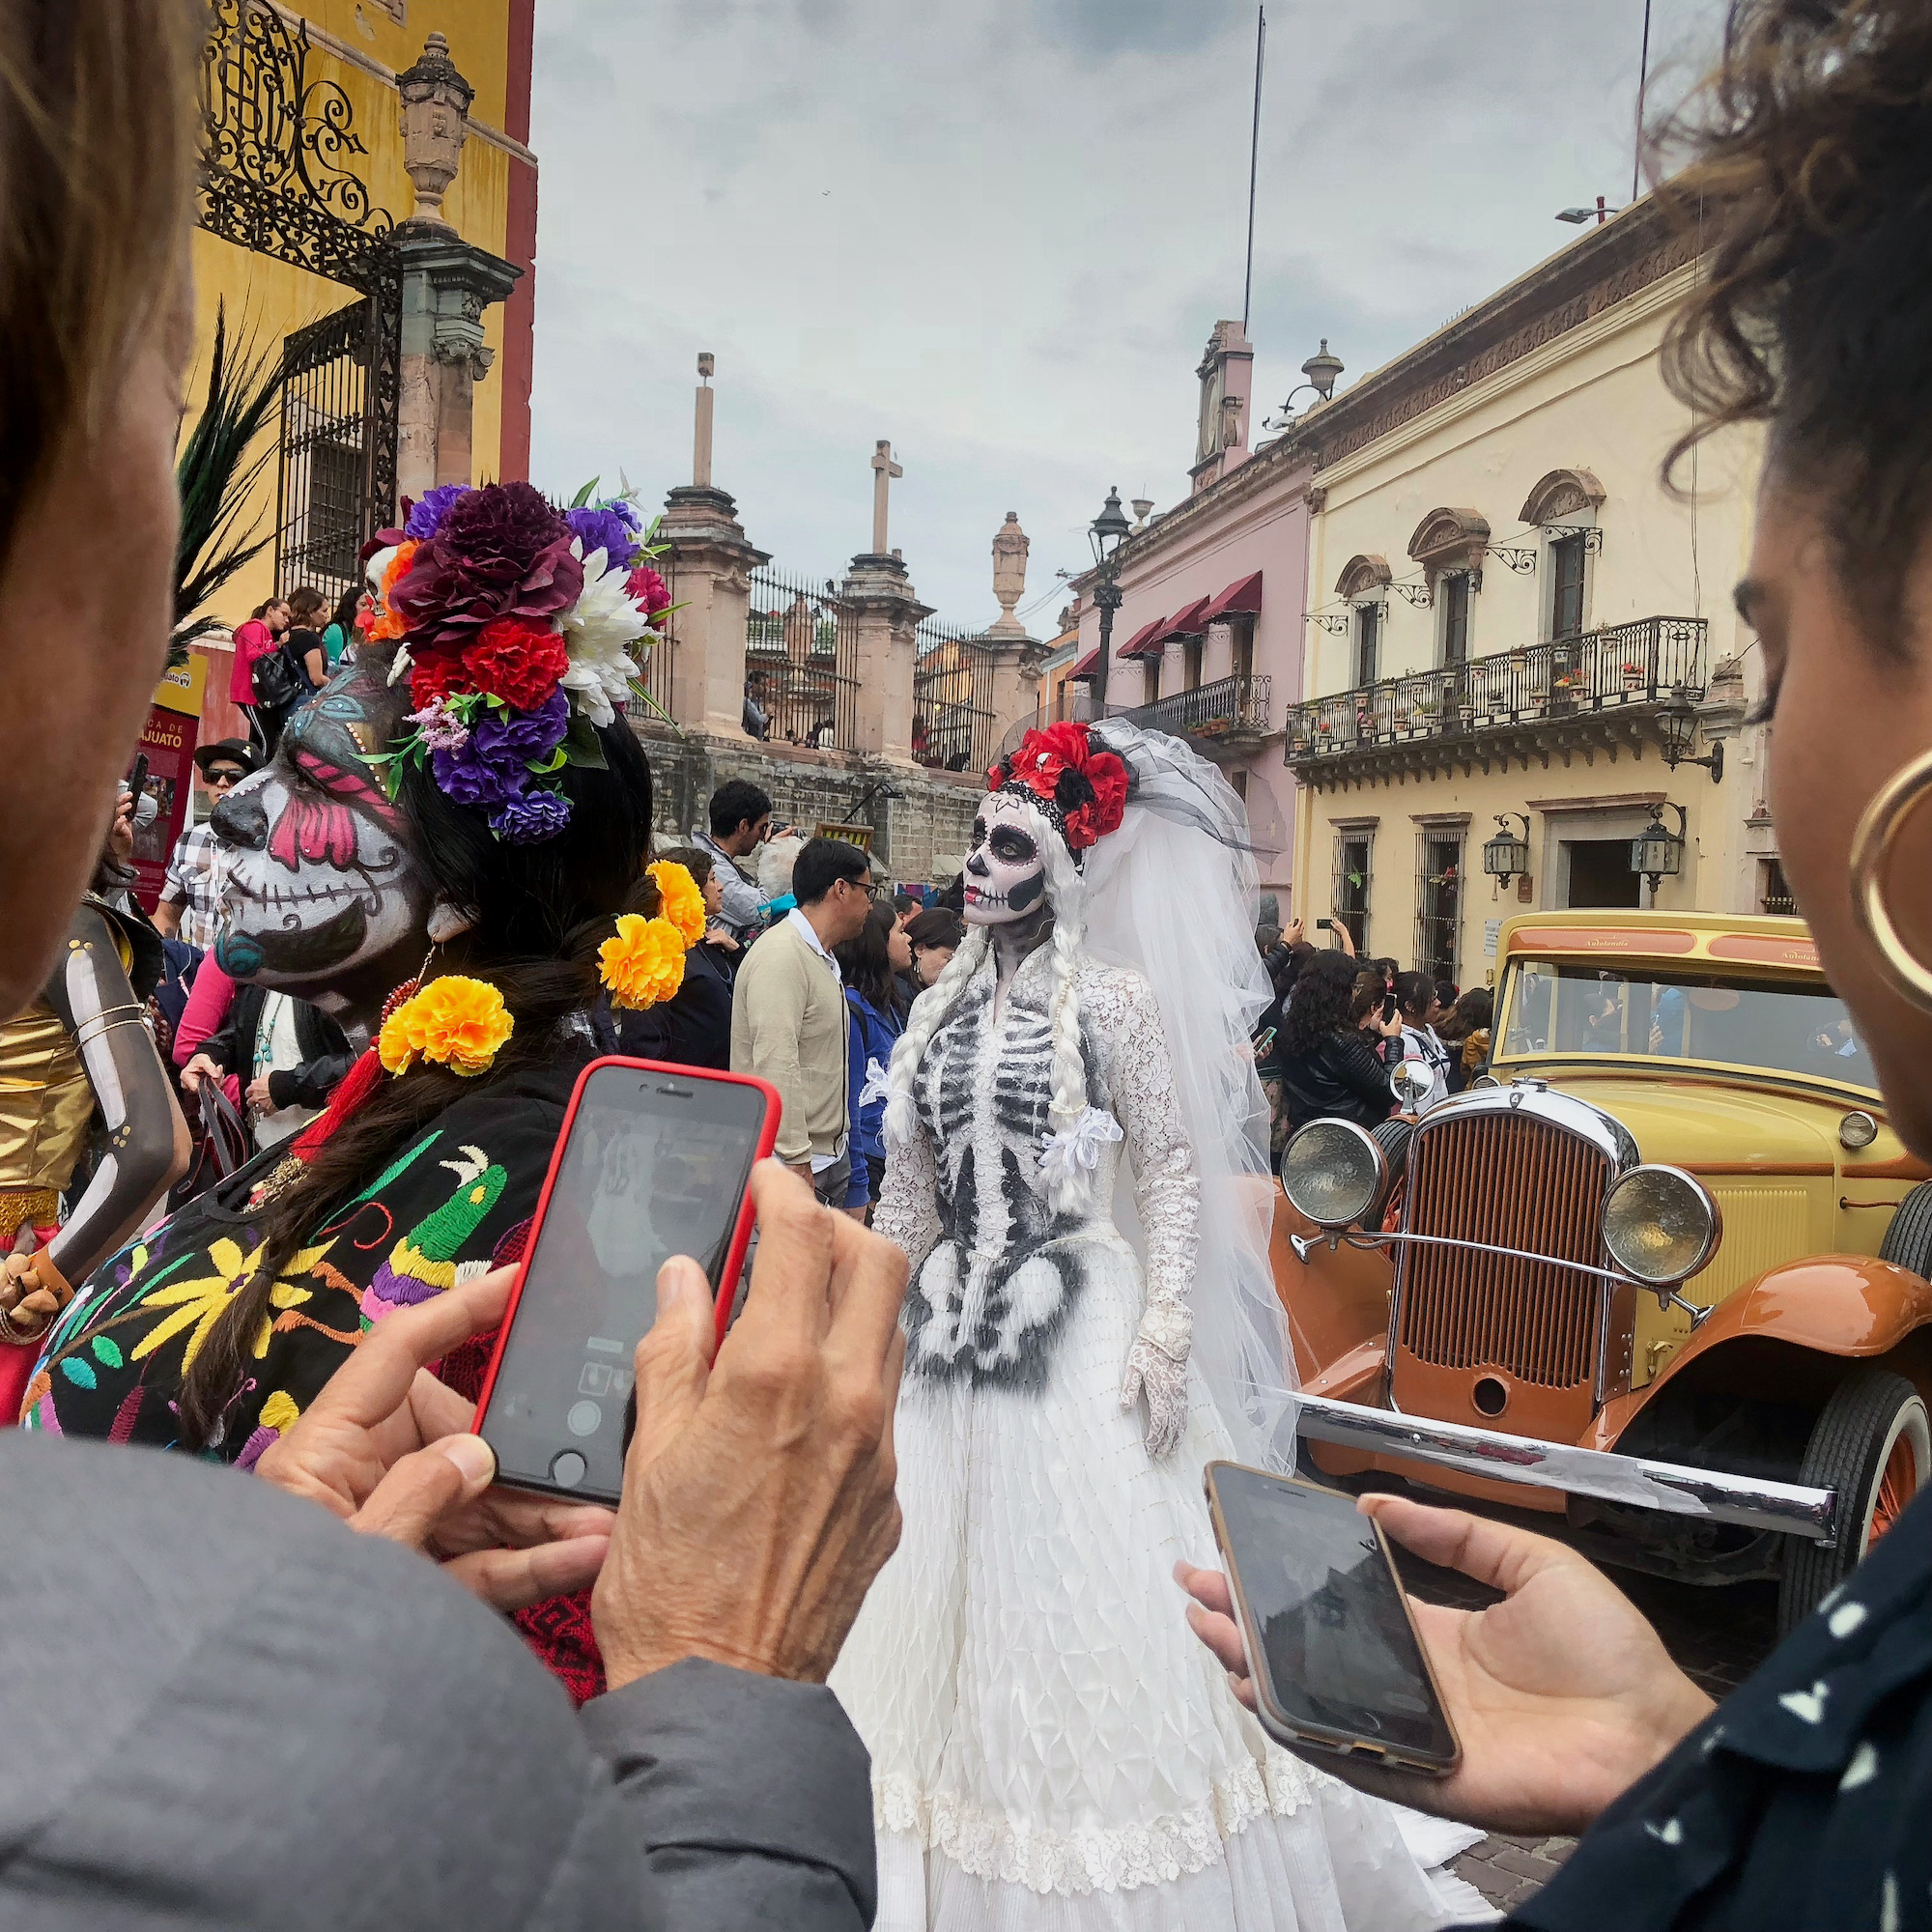 Taking a photo on a smartphone of Day of the Dead celebrations